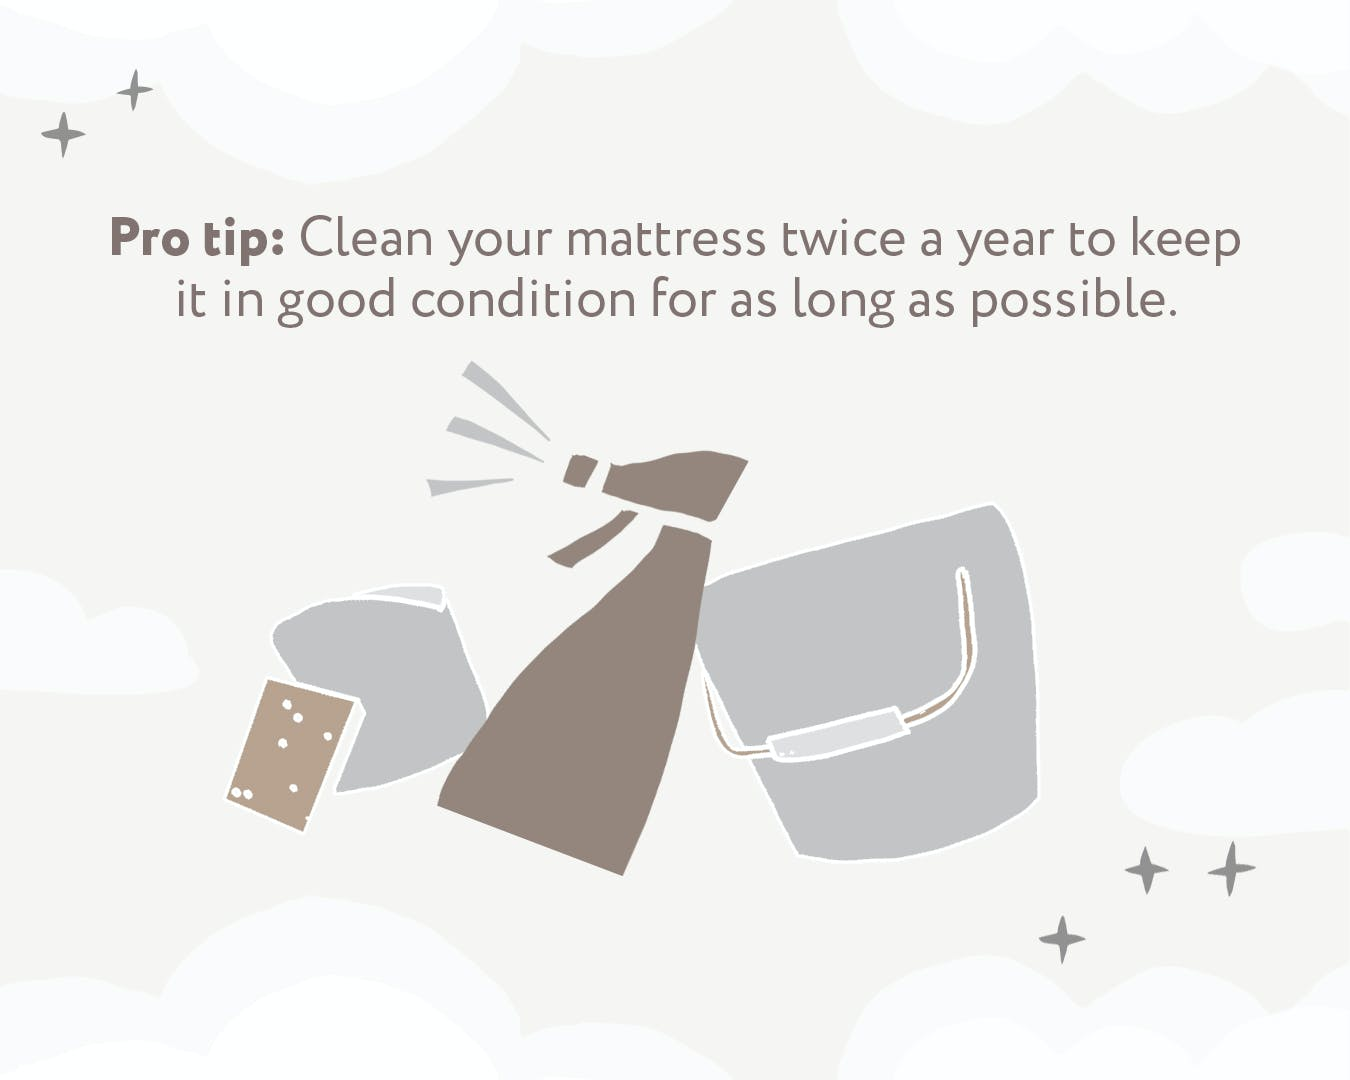 illustration showing how to clean a mattress